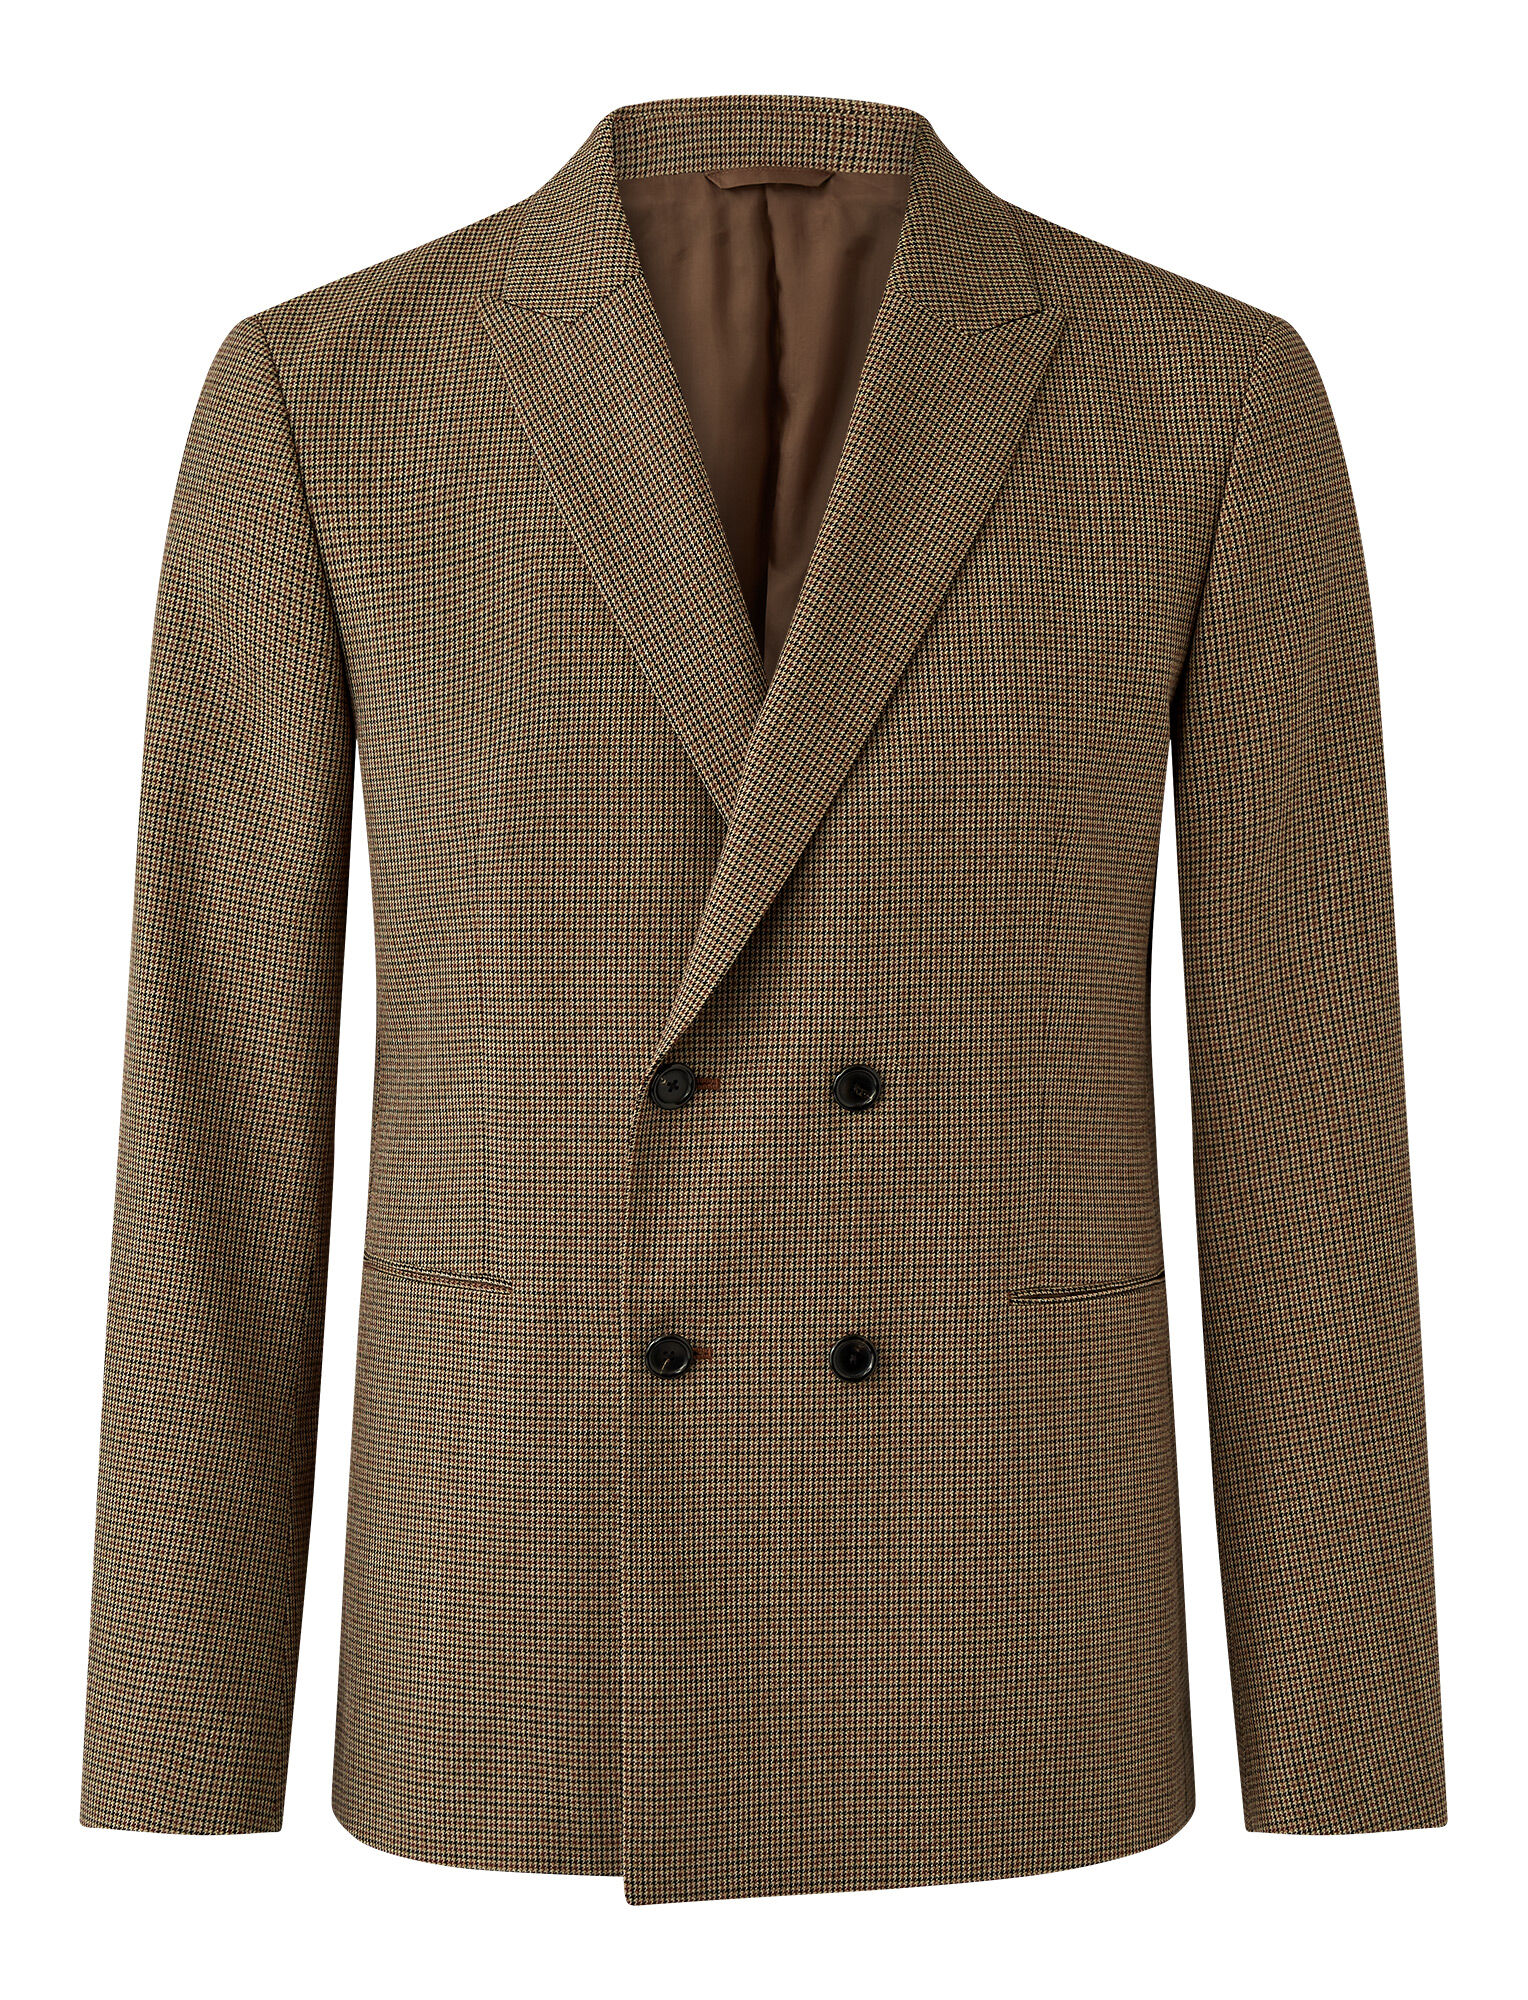 Joseph, Covert Gunclub Jacket, in Beige